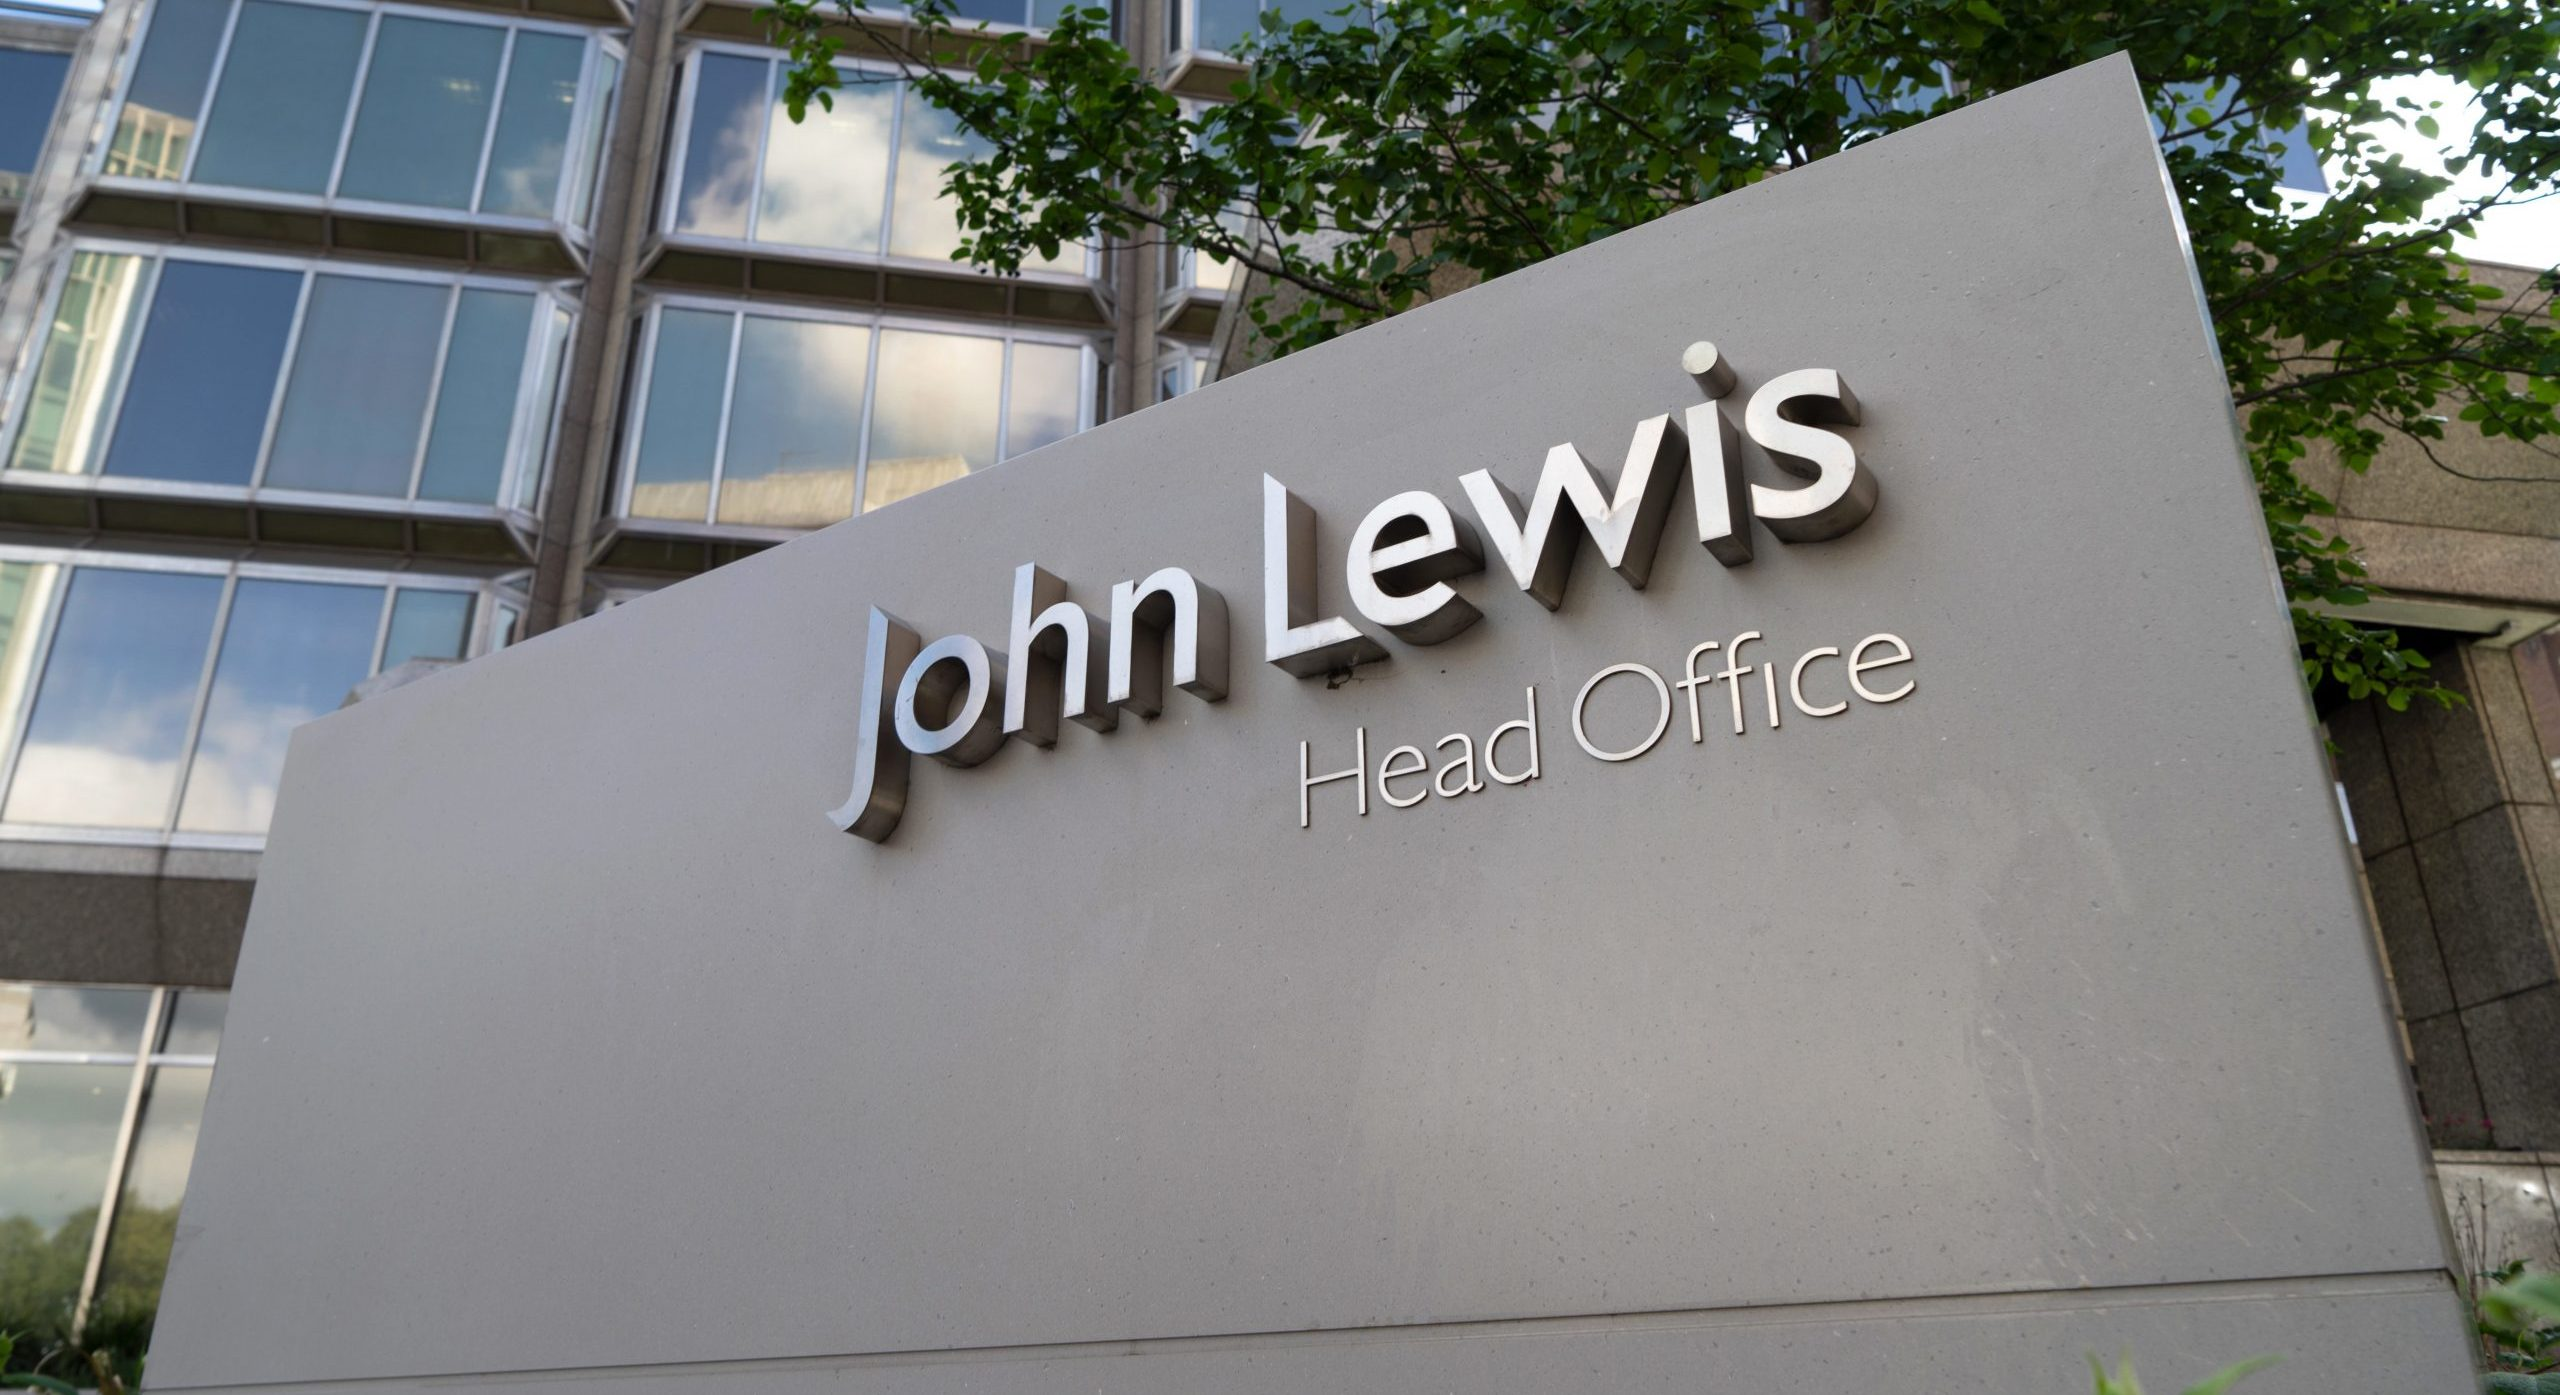 Coronavirus: John Lewis to close its stores temporarily